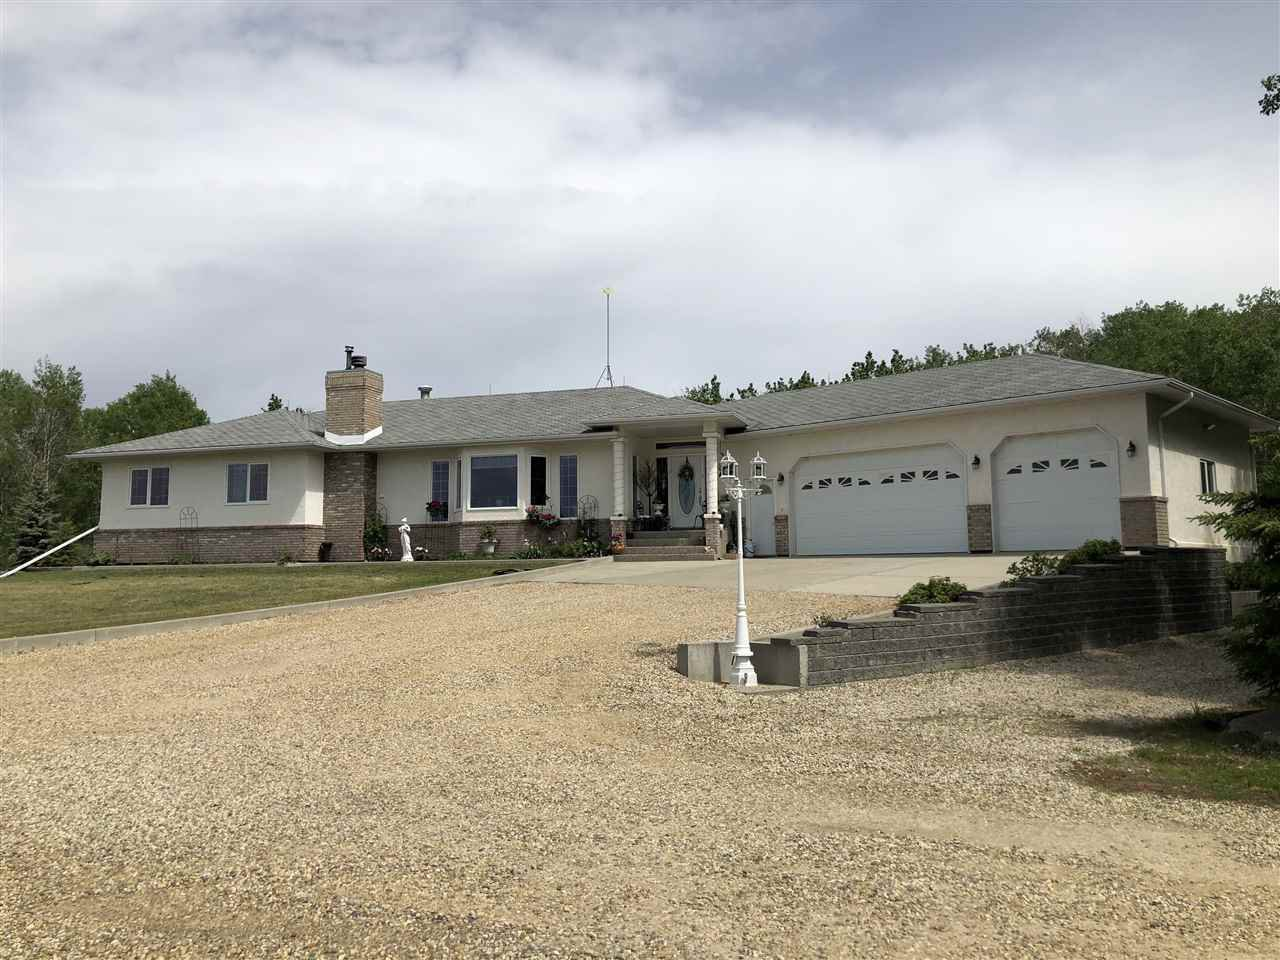 Main Photo: 17 241008 TWP RD 472: Rural Wetaskiwin County House for sale : MLS®# E4160624